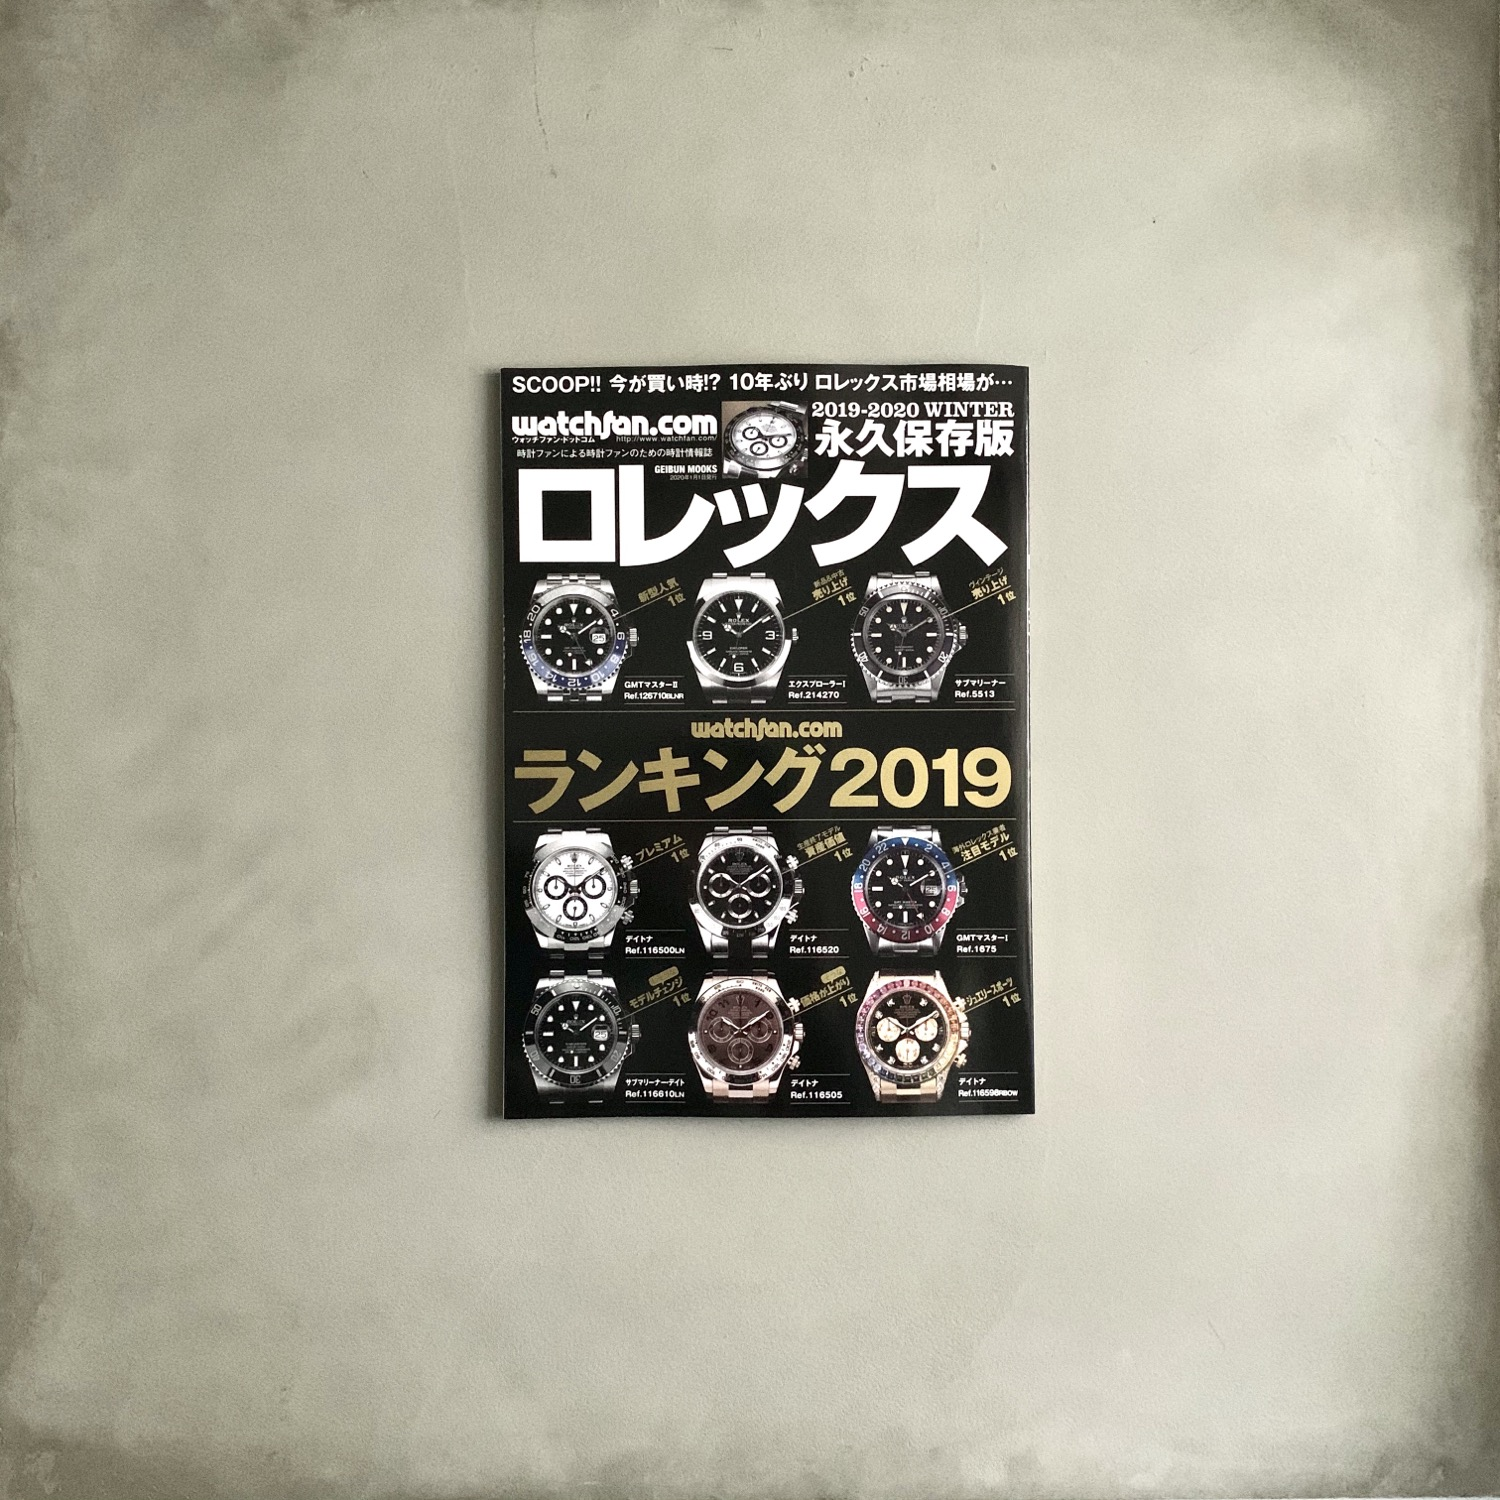 Rolex Special Book 2019-2020 Winter